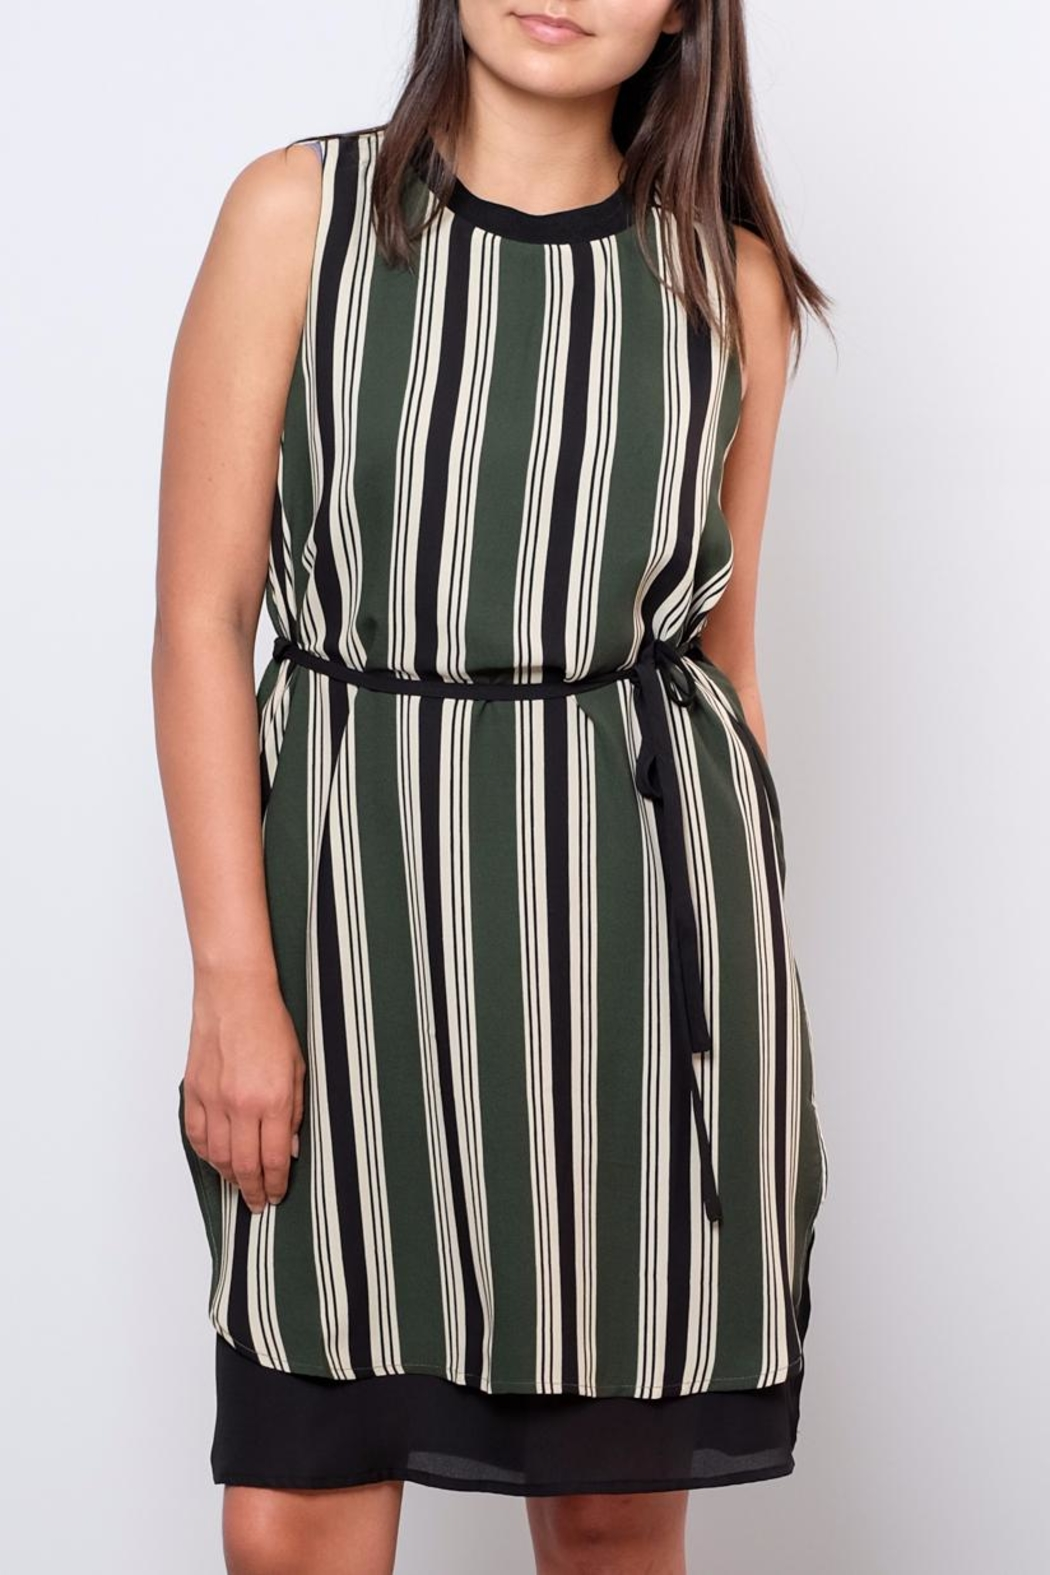 Everly Striped Shift Dress - Main Image